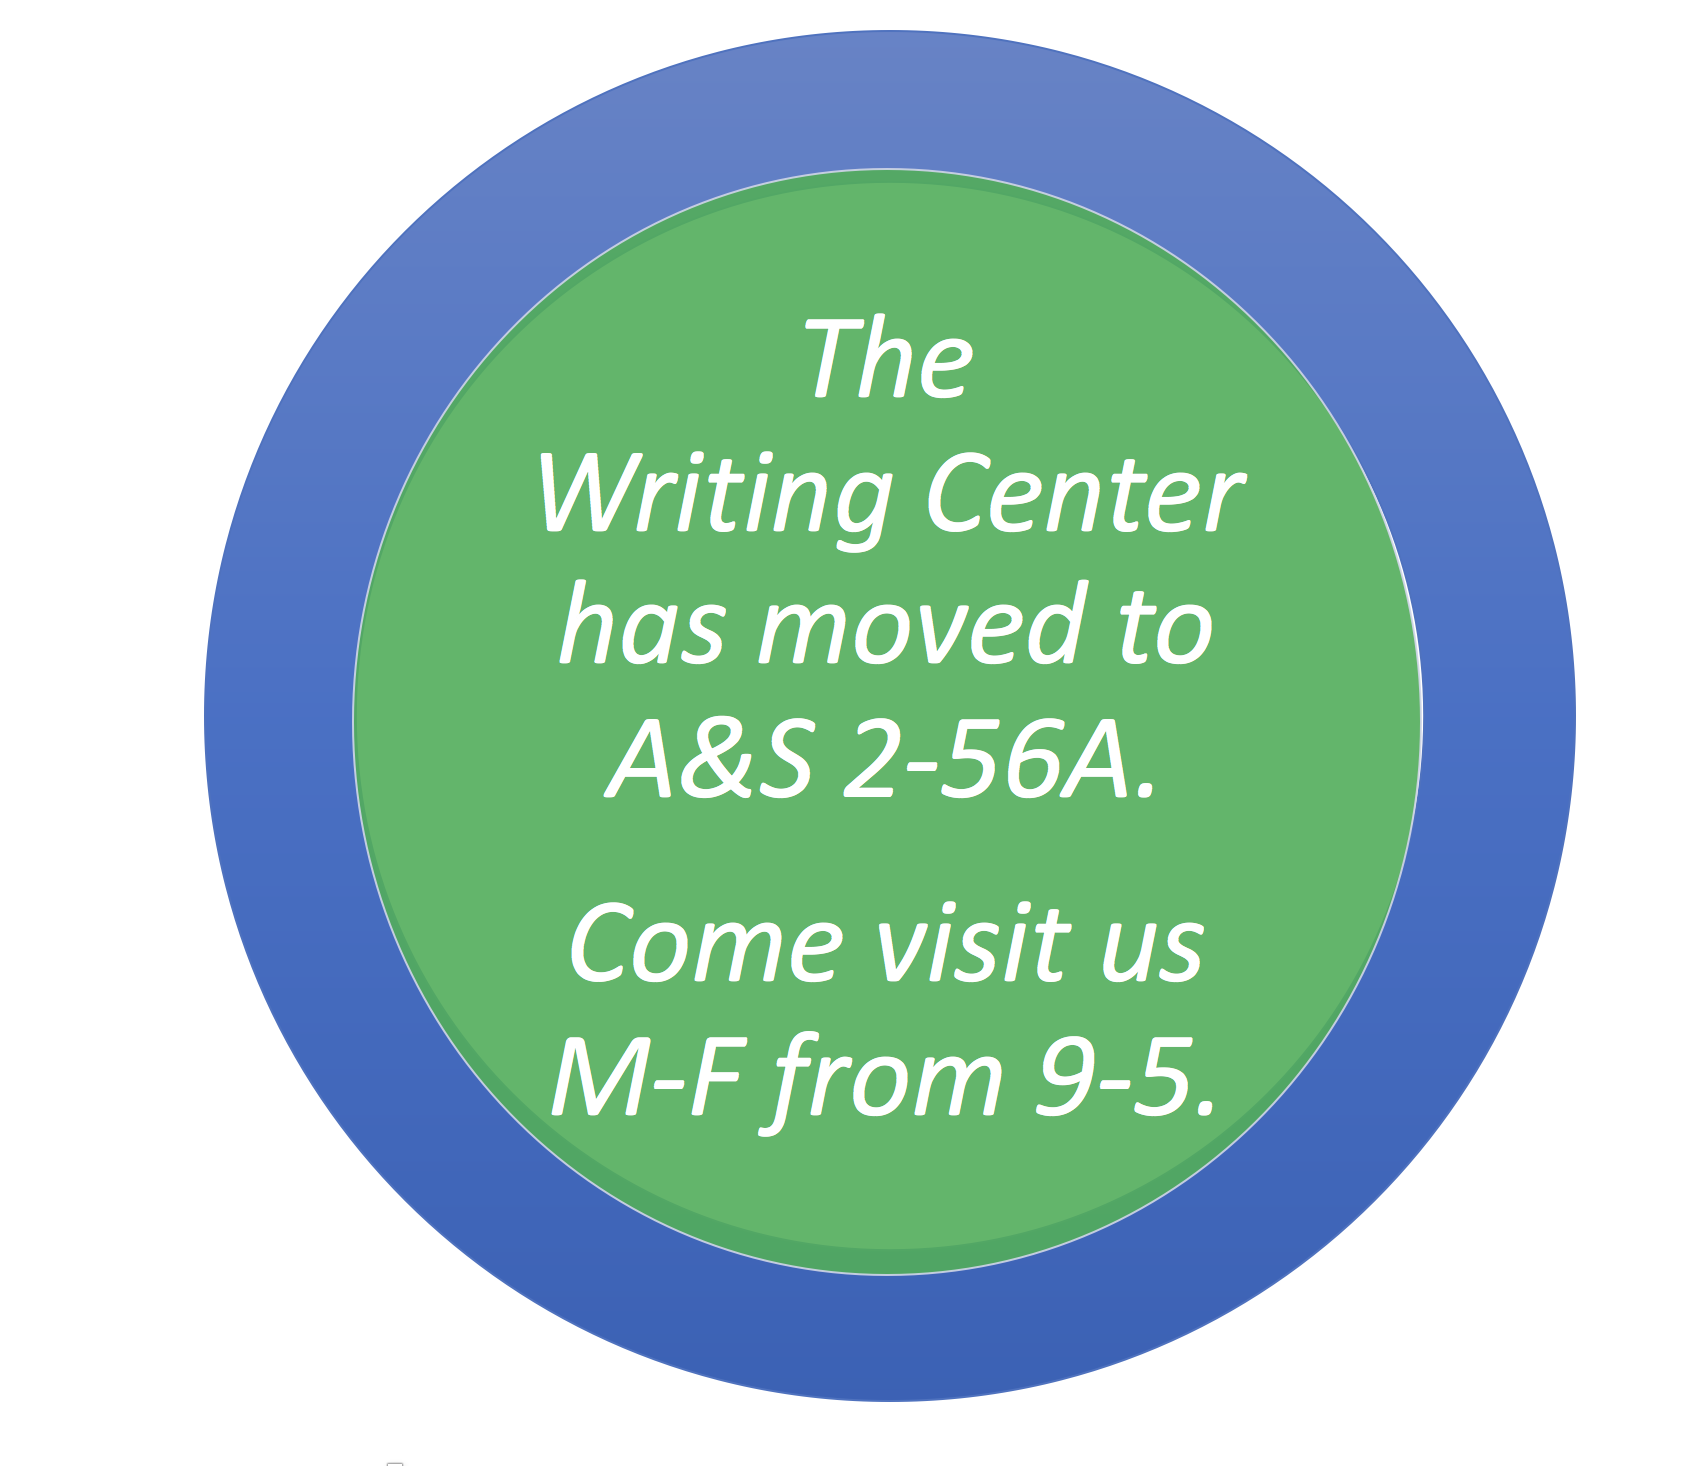 The Writing Center has moved to A&S 2-56A. Come visit us Monday-Friday from 9:00 a.m. to 5:00 p.m.